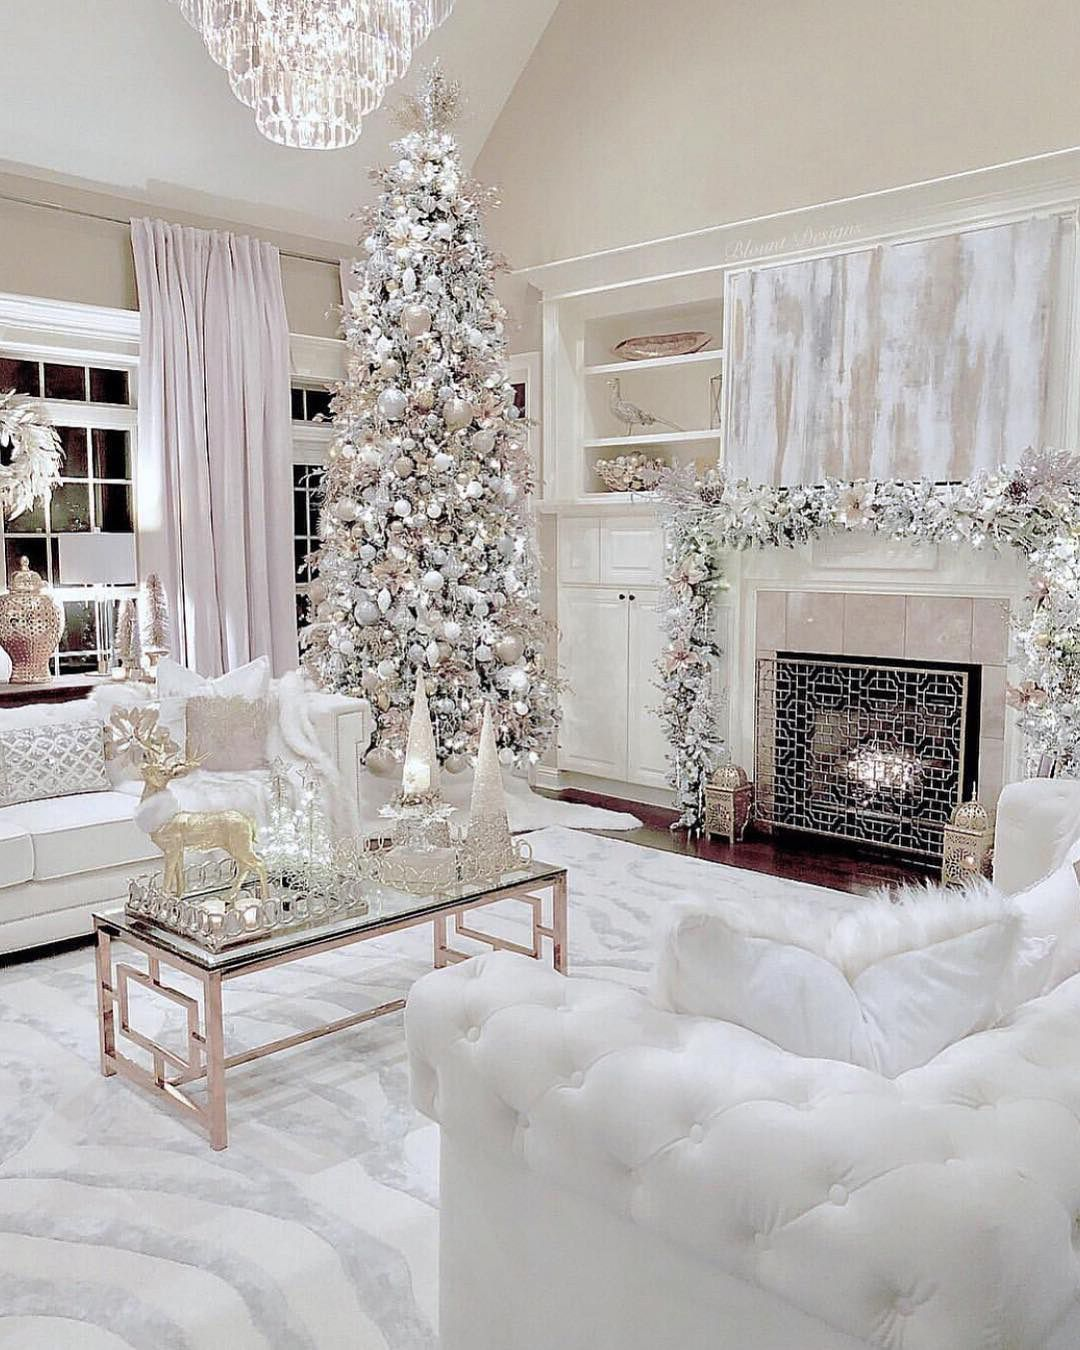 34 Stunning Christmas Trees Decorated For The Holiday Season White Christmas Decor Silver Christmas Decorations Winter Home Decor